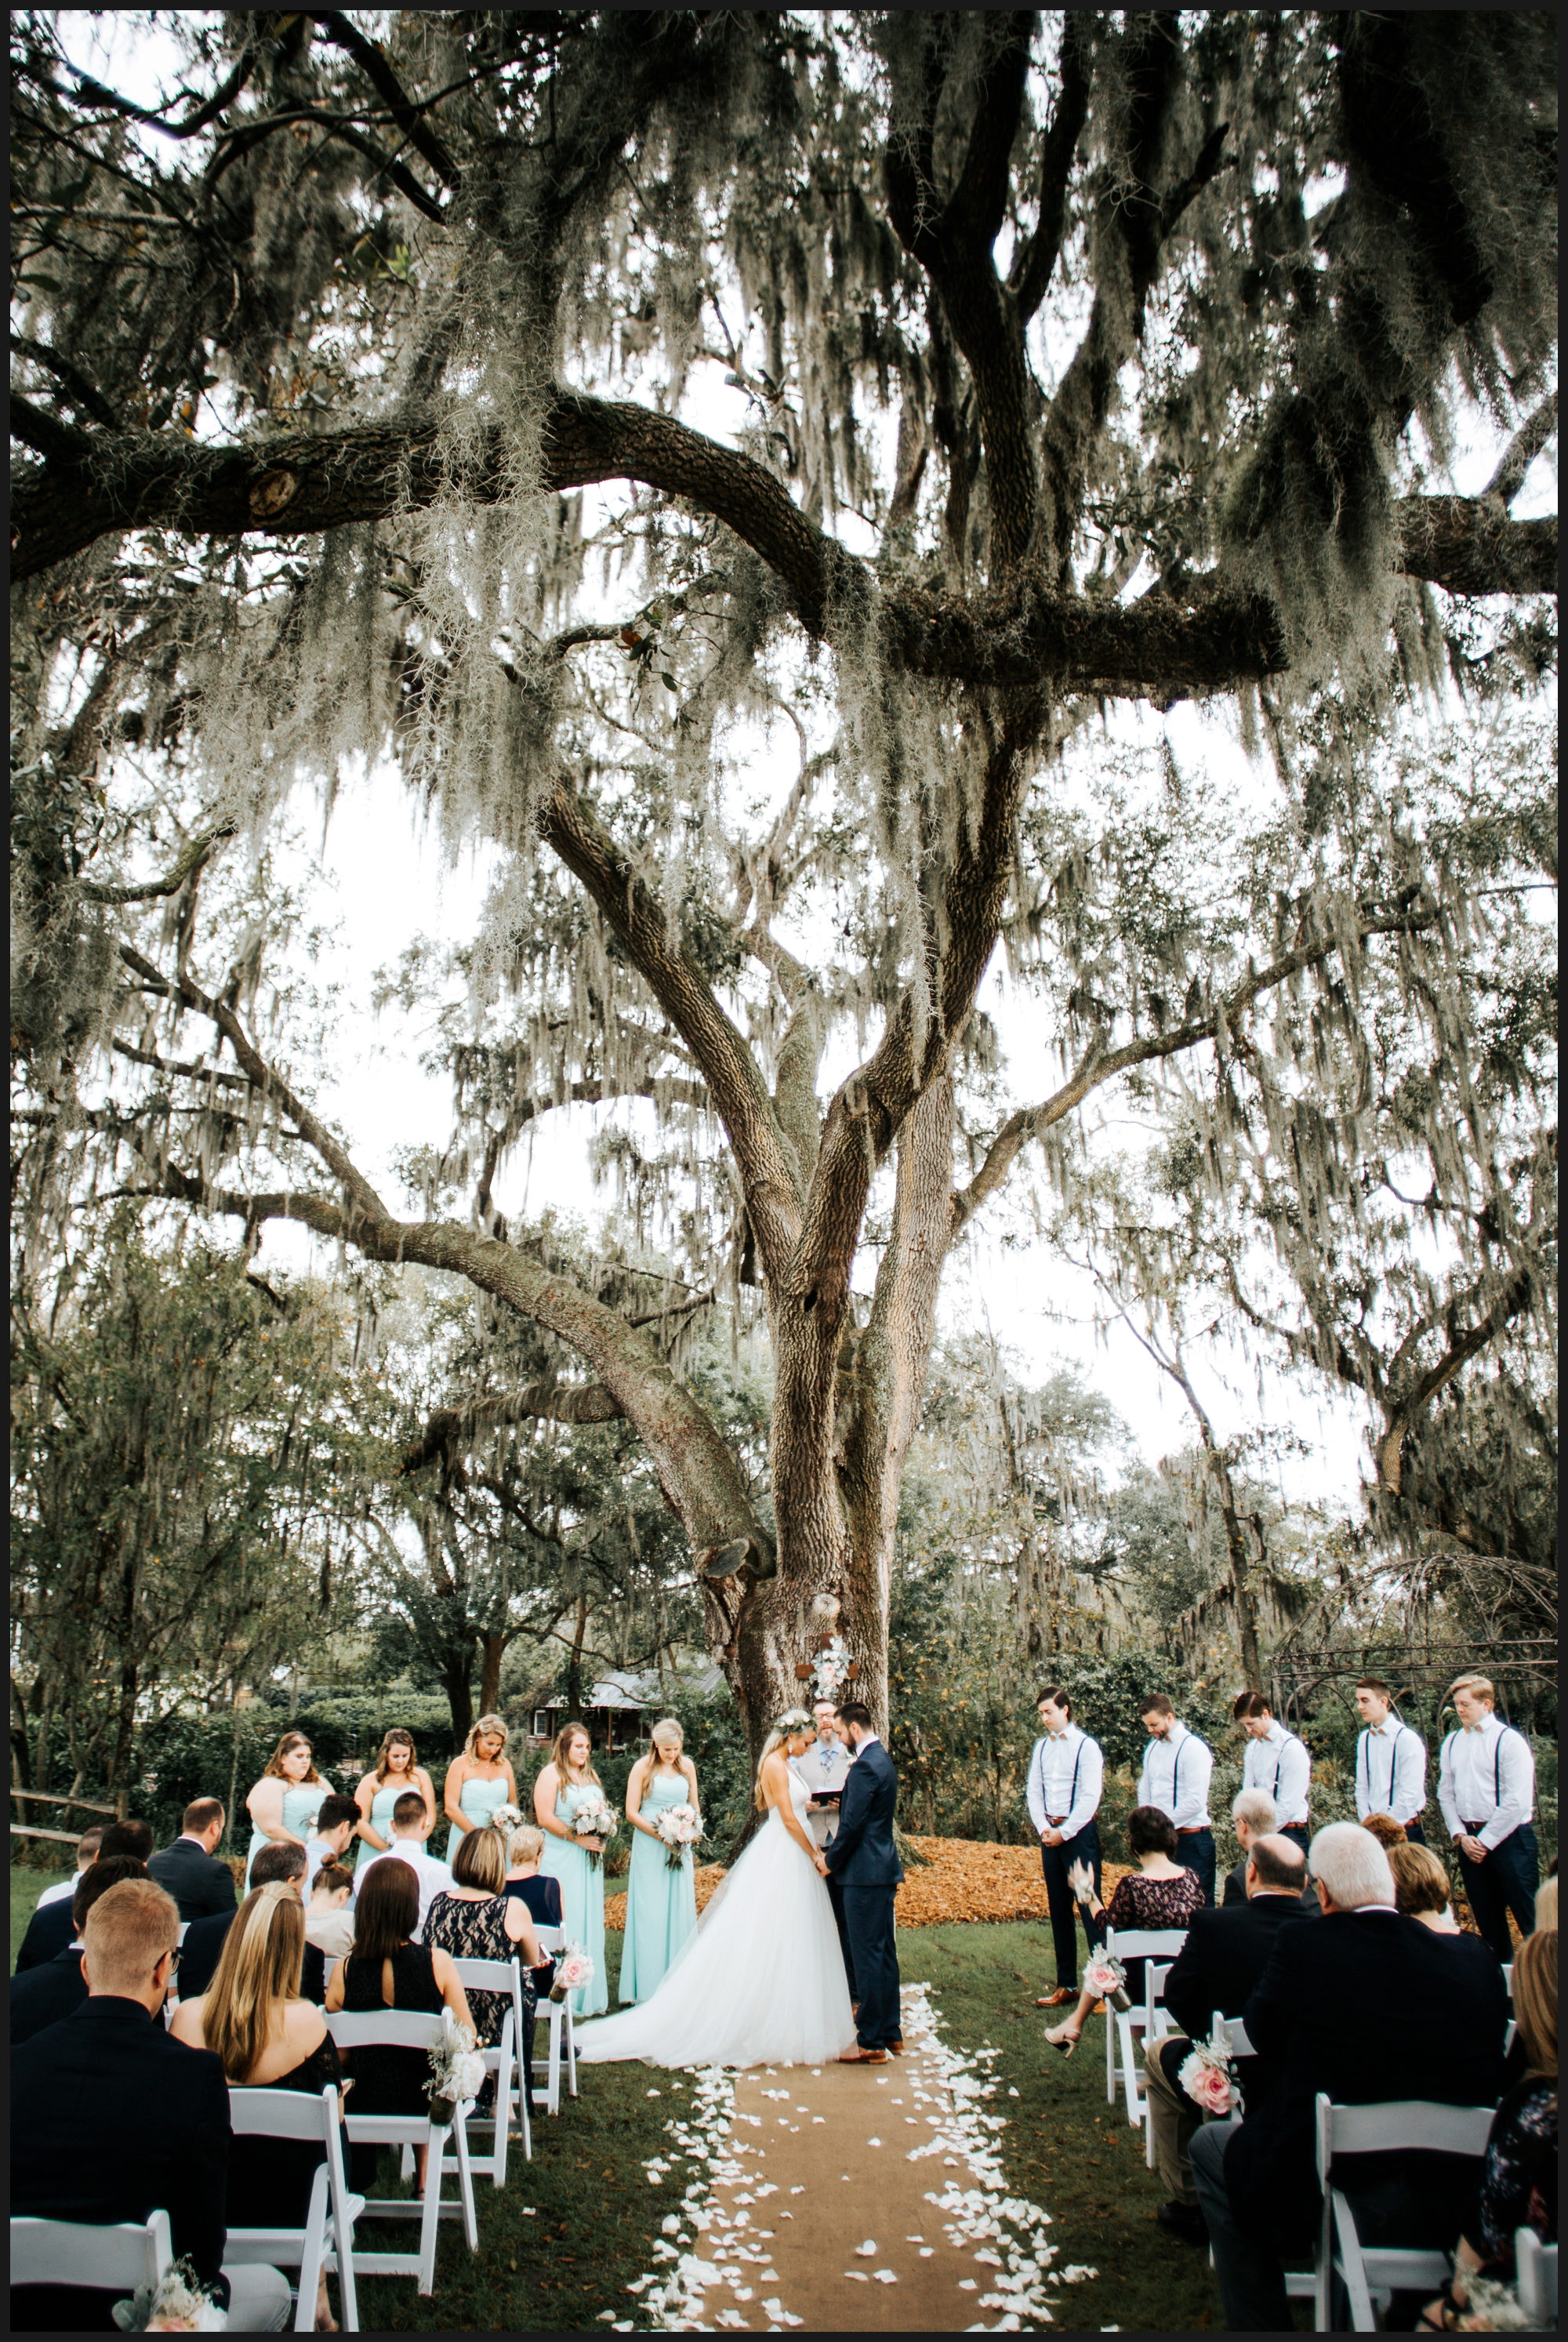 OrlandoWeddingPhotographerMattSierra_0086.jpg